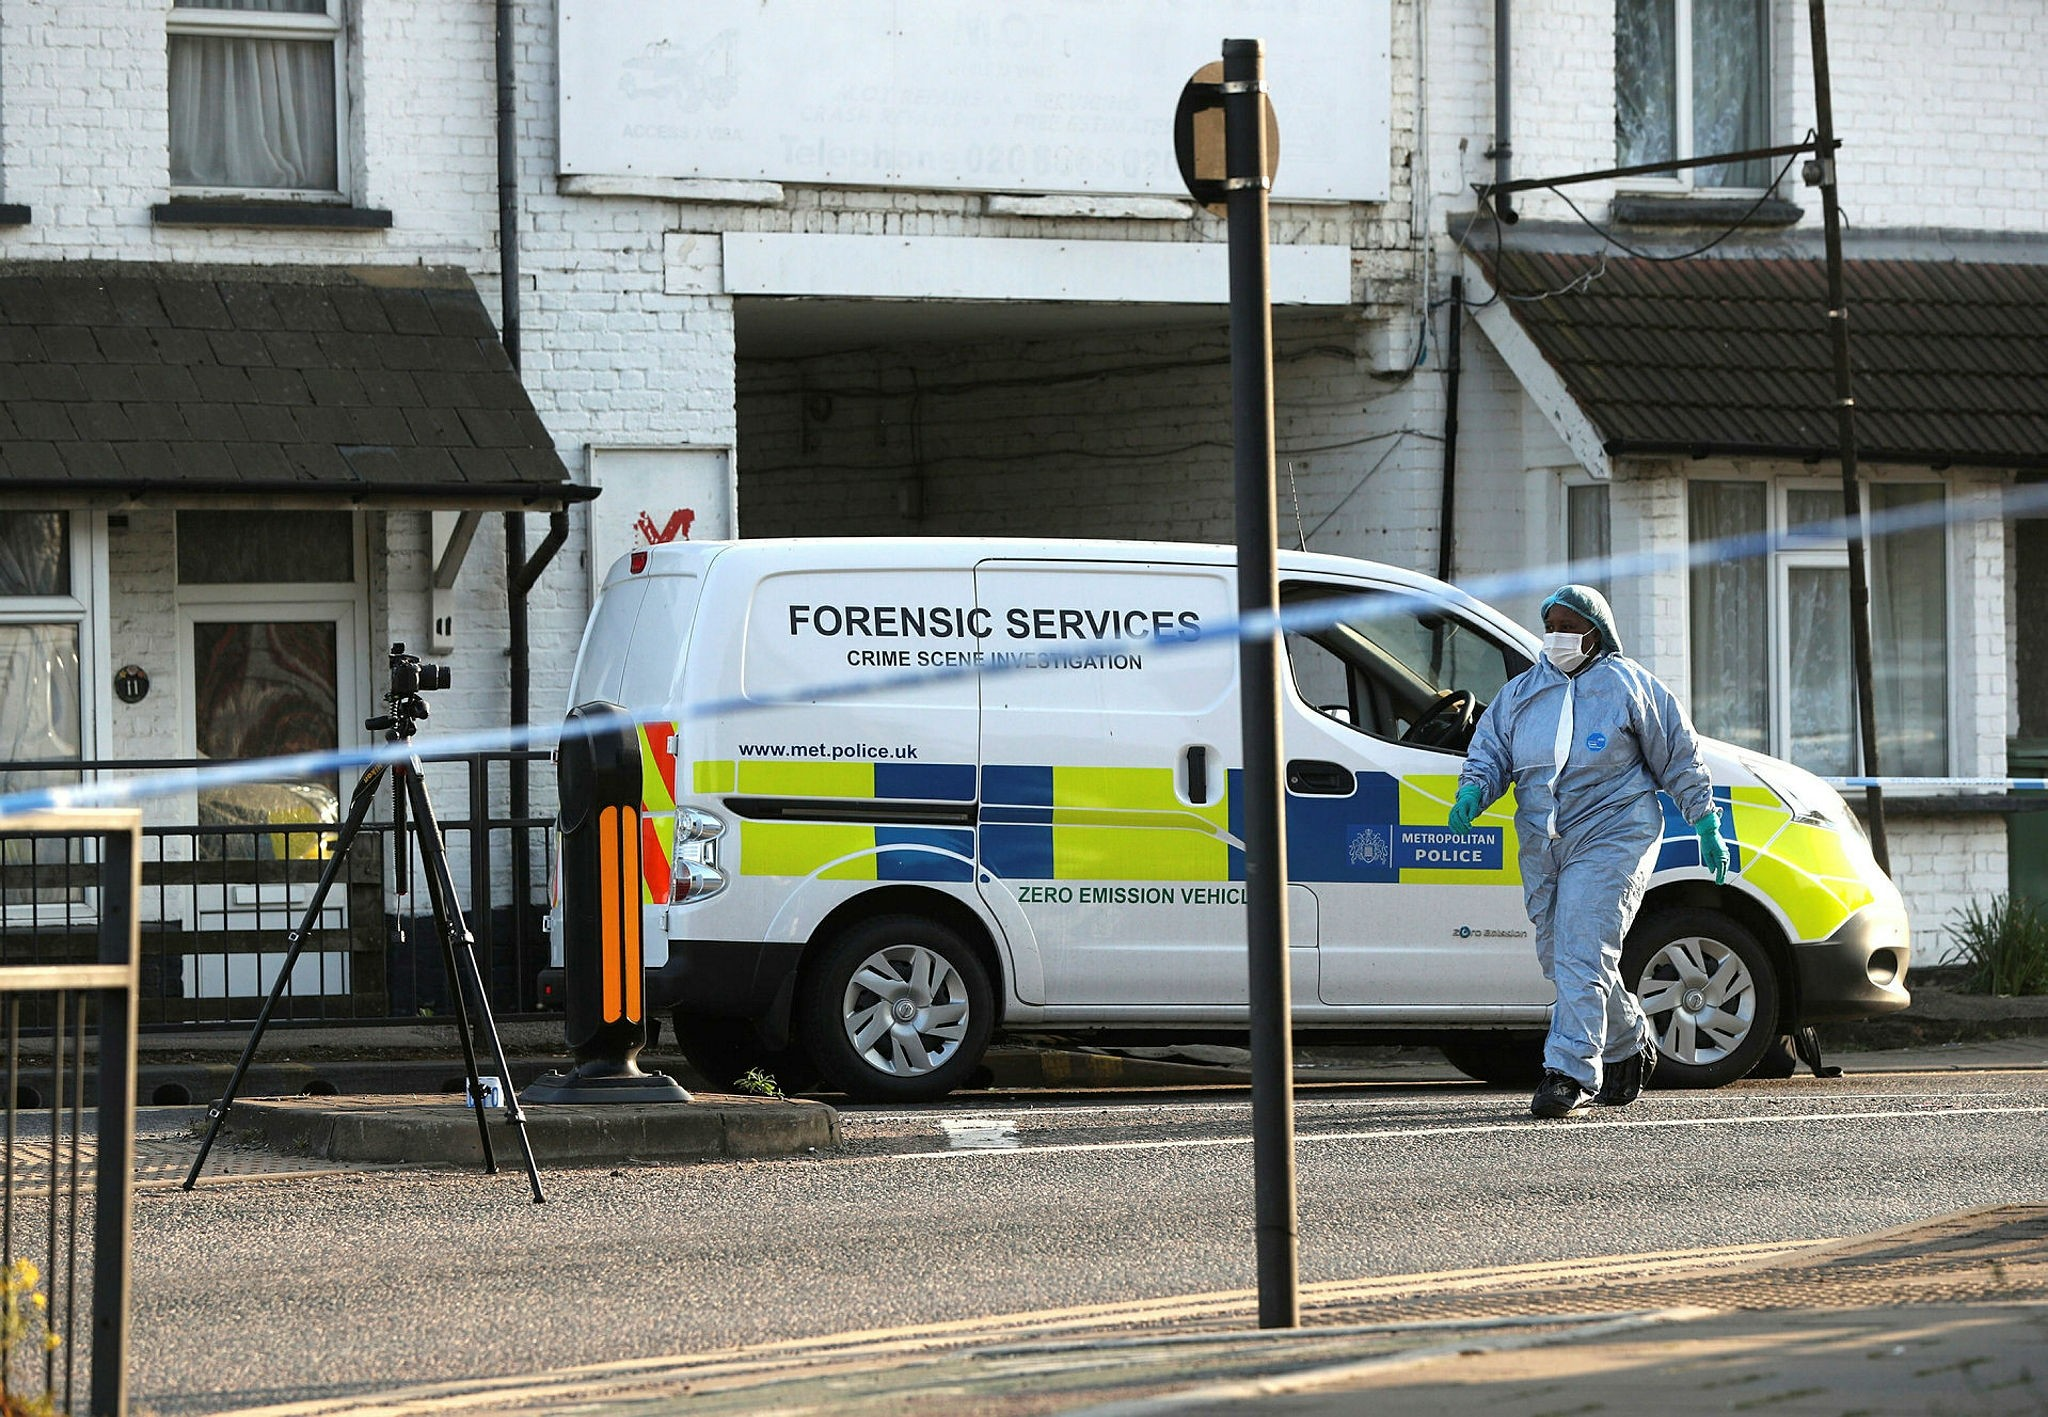 Police attend the scene following two shootings at two locations in close proximity, in the Wealdstone area of London, Sunday May 6, 2018. (AP Photo)